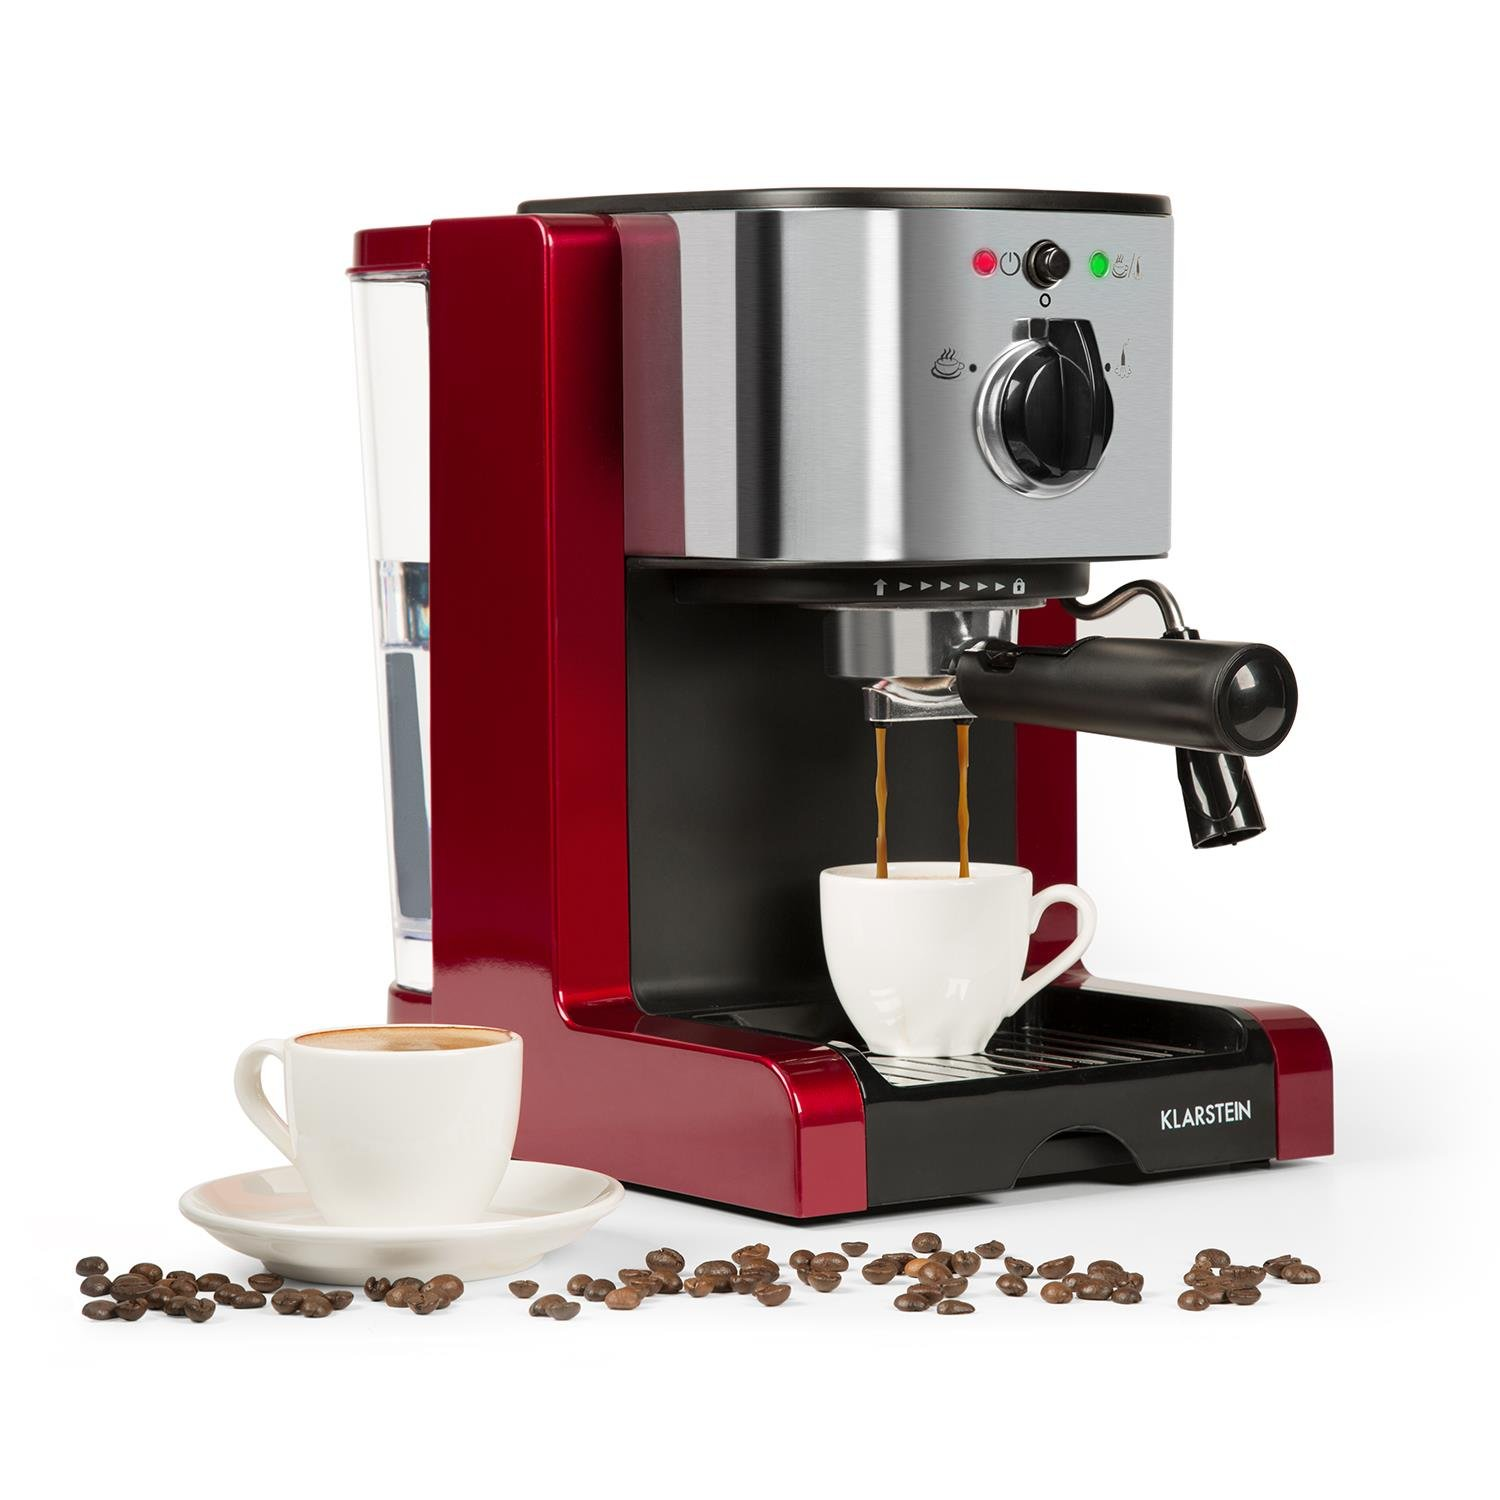 Klarstein Passionata Rossa 15 Espresso Machine 15 Bar Capuccino Milk Foam 1470W Stylish Design for Modern Kitchens Steam Nozzle for Frothing Milk and Preparing Hot Drinks Red